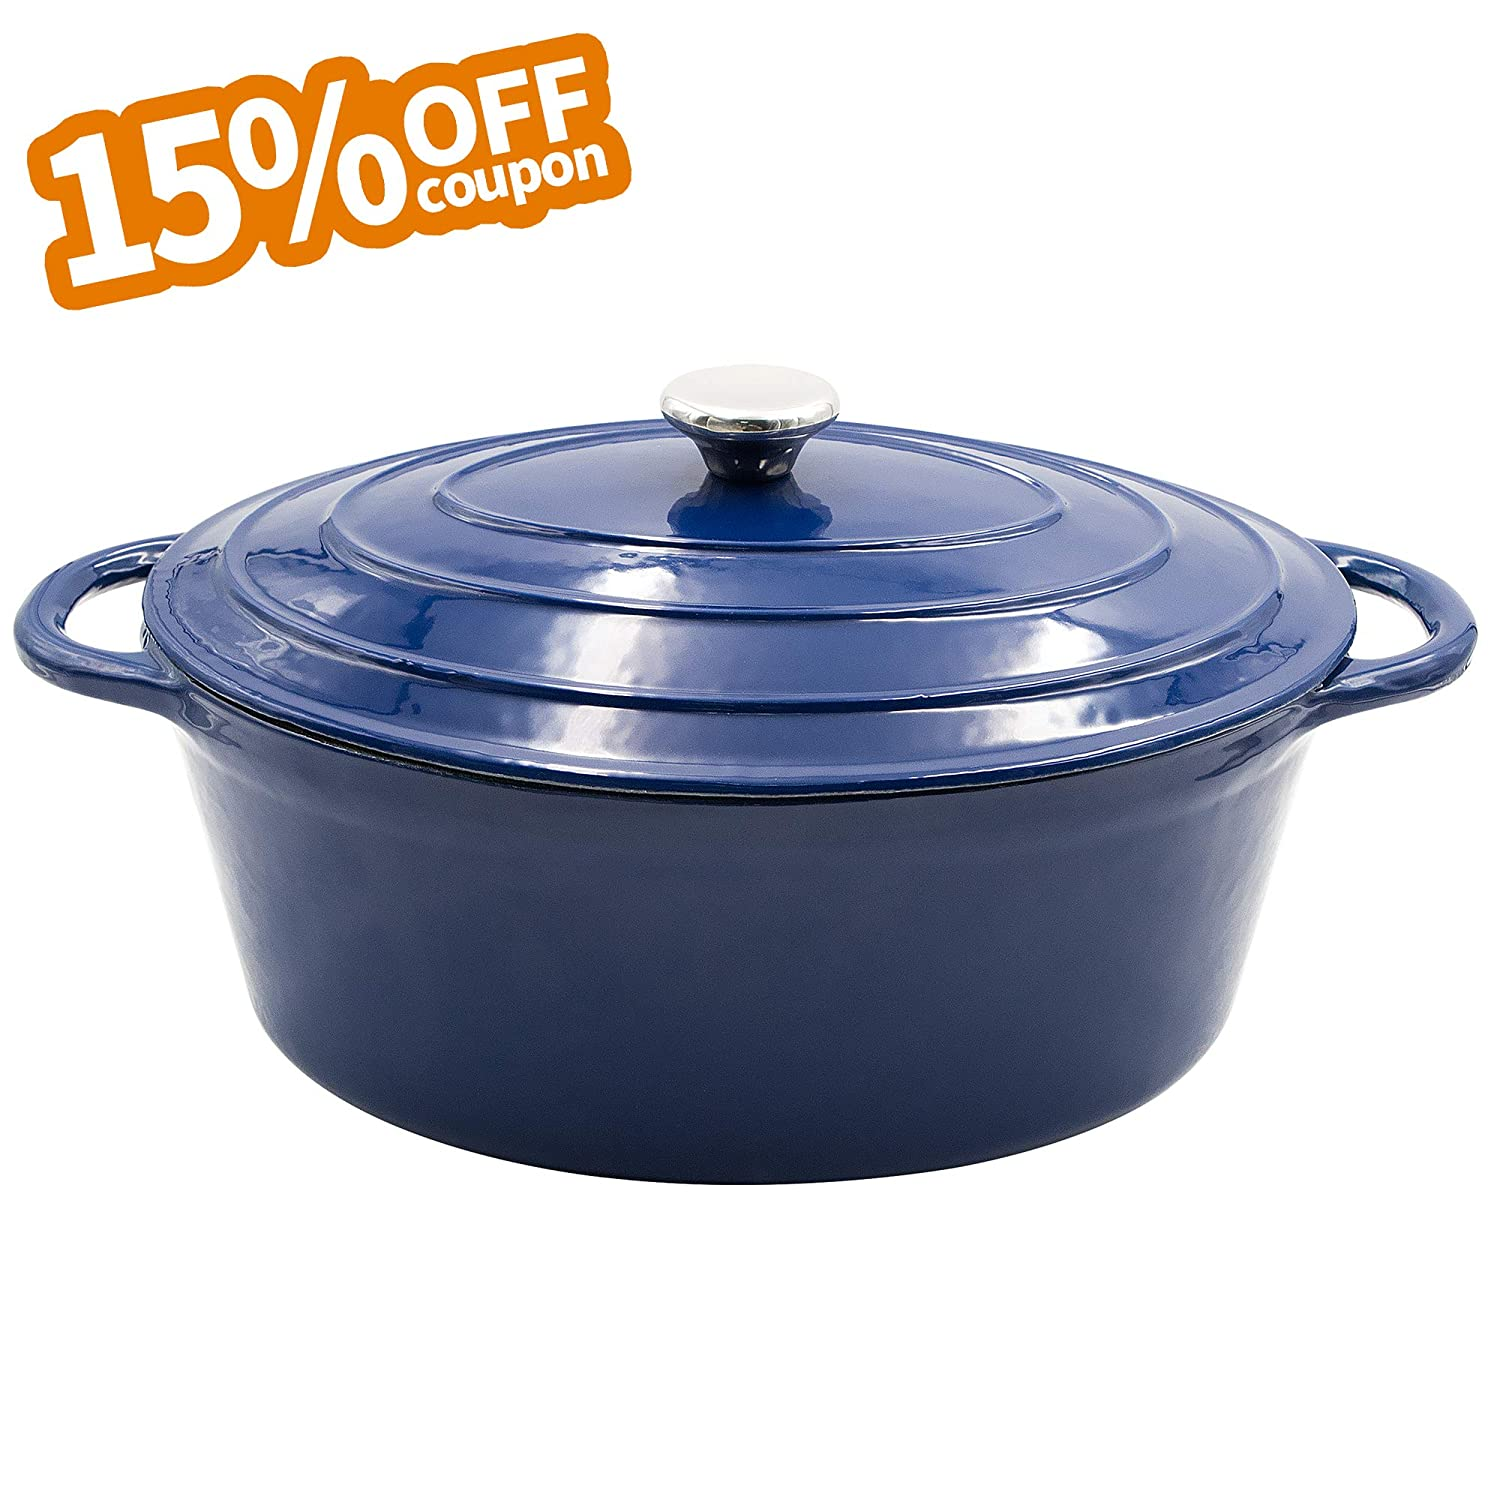 AIDEA Enameled Cast Iron Dutch Oven - 7-Quart Cobalt Blue Oval Ceramic Coated Cookware French Oven with Self Basting Lid